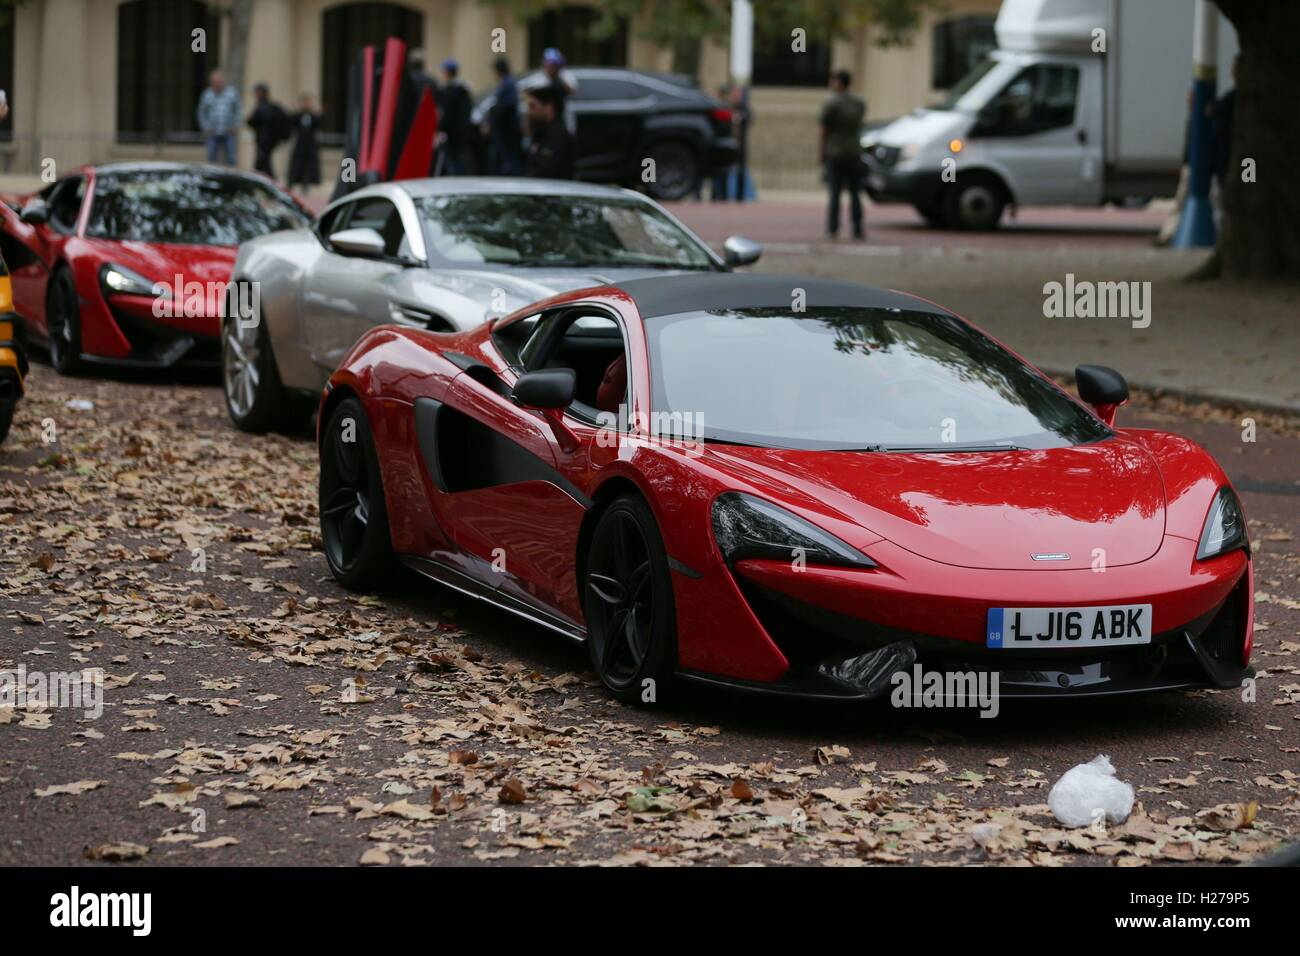 A McLaren (front In Red) Sports Car During Filming Of The Film Transformers:  The Last Knight, On The Mall In London.